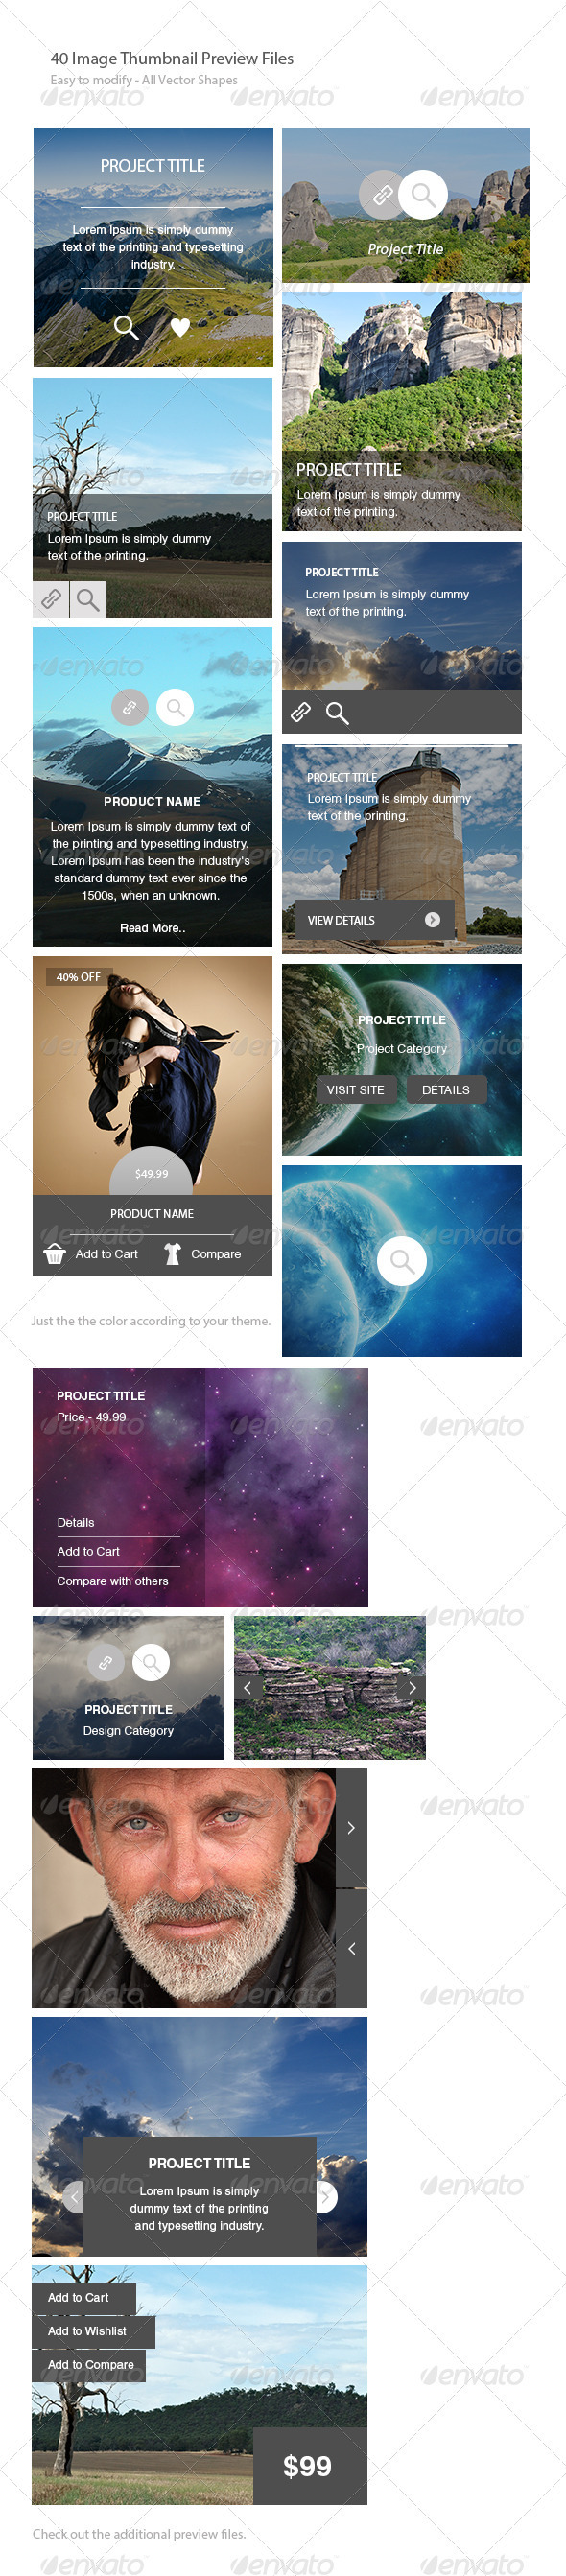 GraphicRiver Make Web Image Thumbnails Quickly 3674603